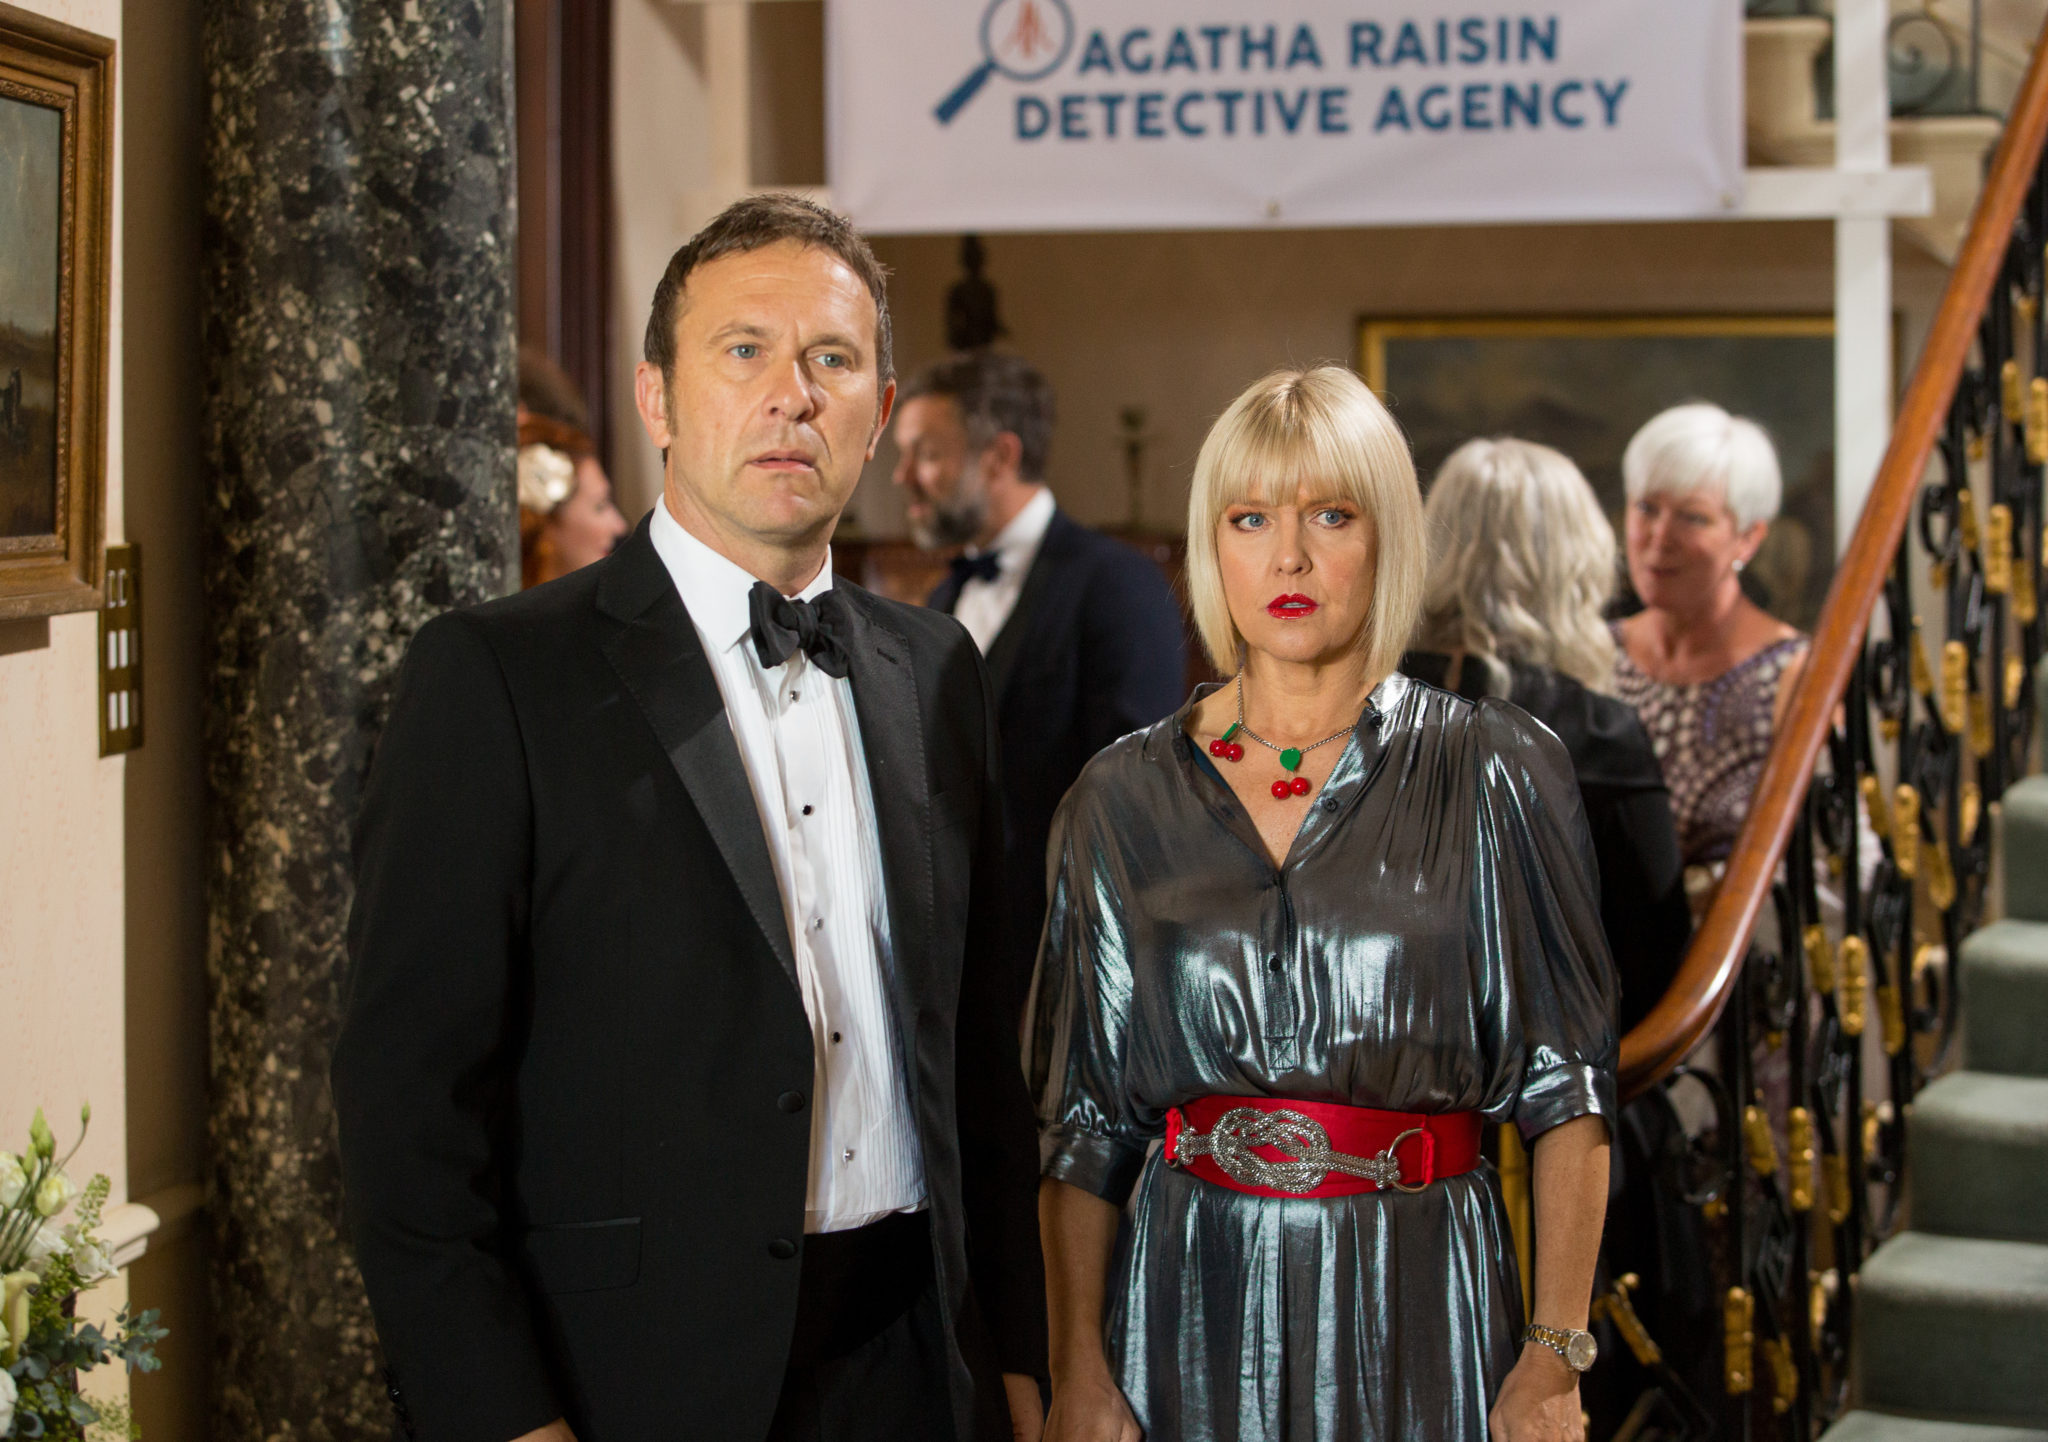 Agatha Raisin Love From Hell on Acorn TV_Ashley Jensen and Jason Merrells_G3A3244-Photo With Permission from Acorn TV